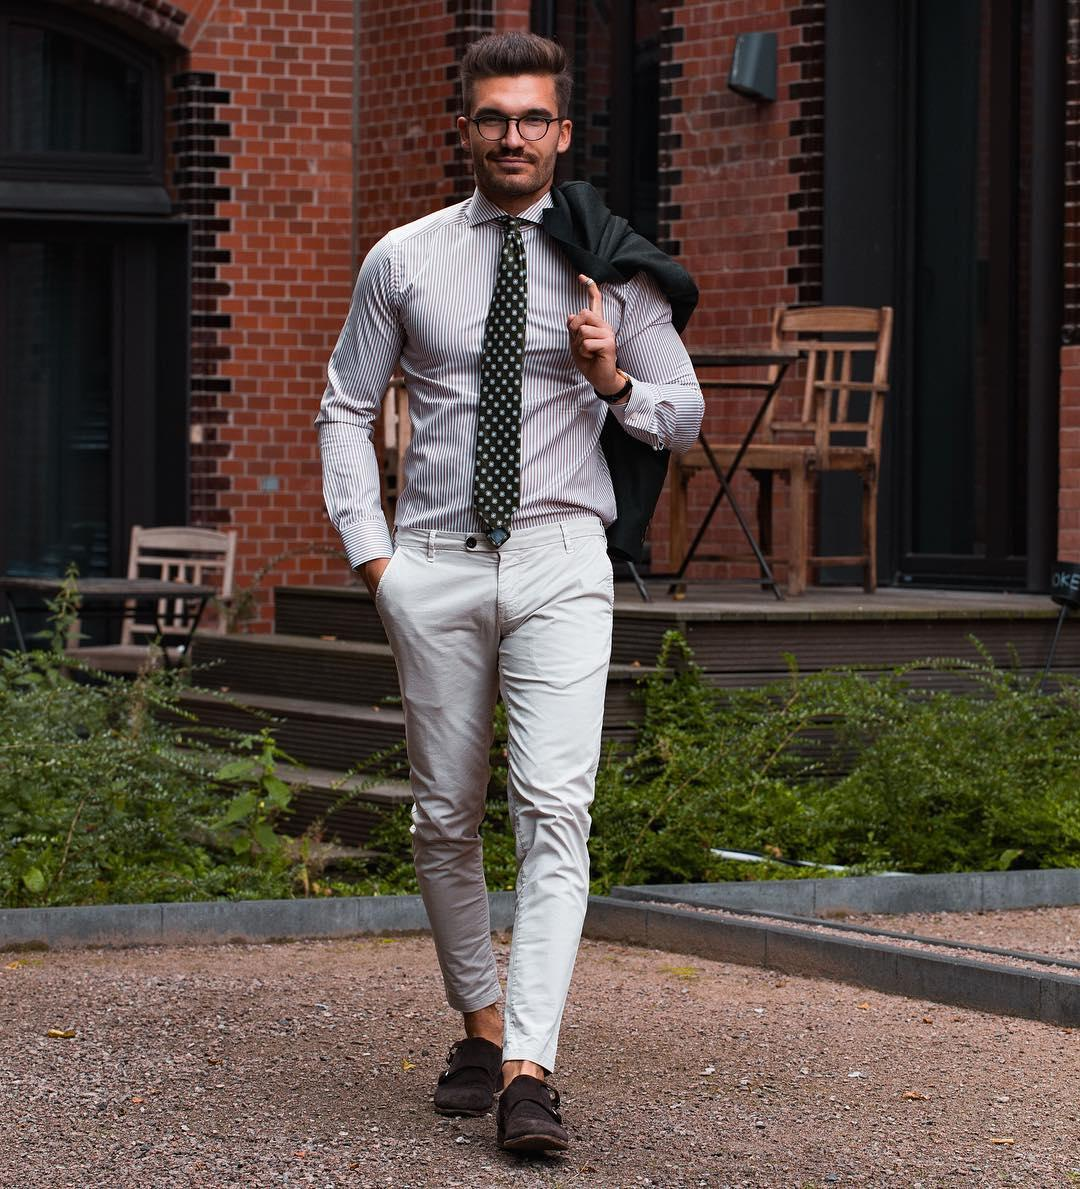 How do you imagine an ideal business attire?